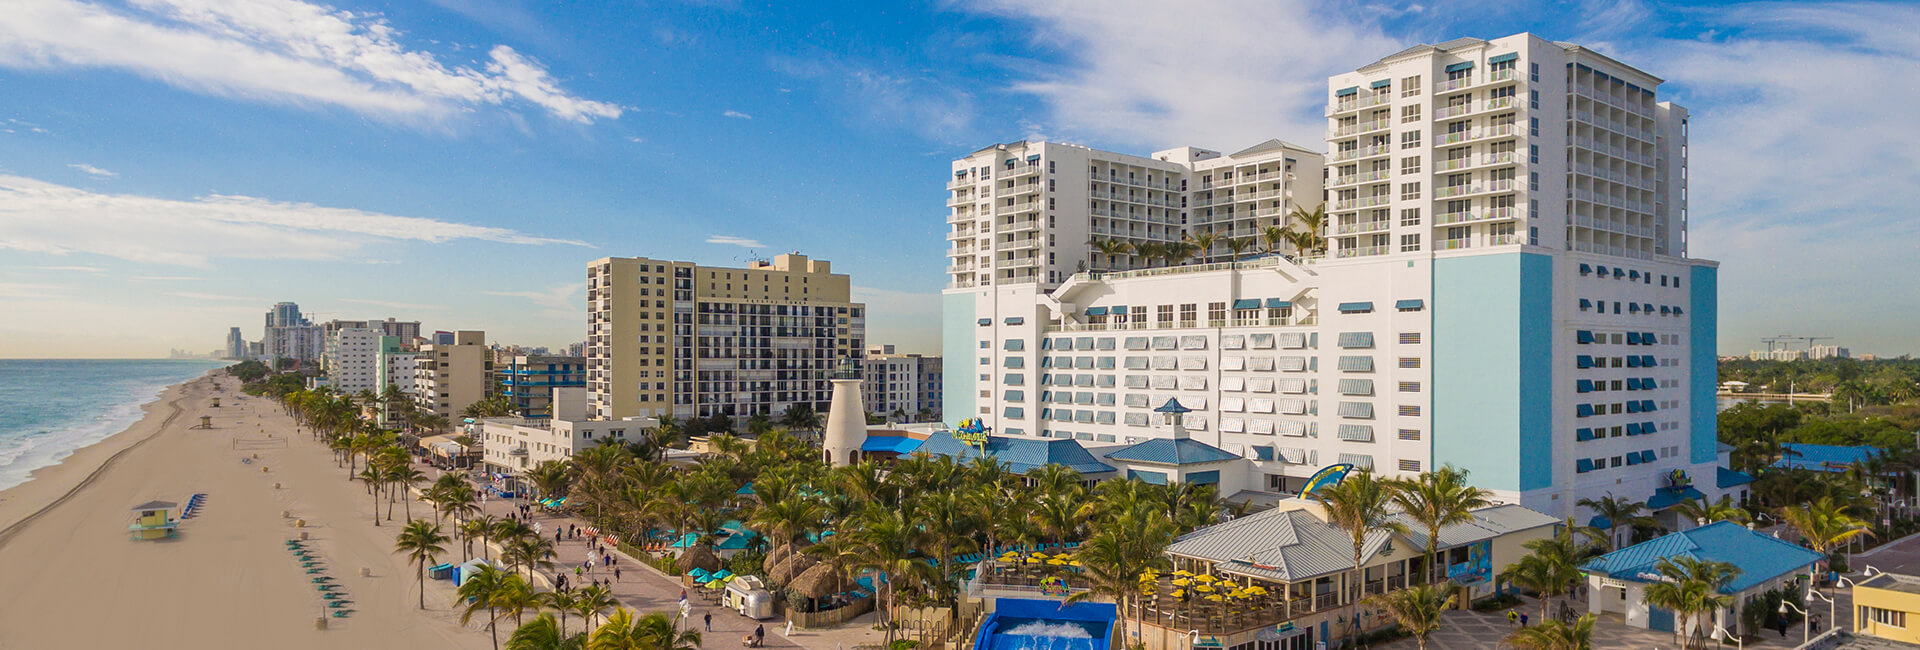 Entertainment in Hollywood Fl | Margaritaville Hollywood